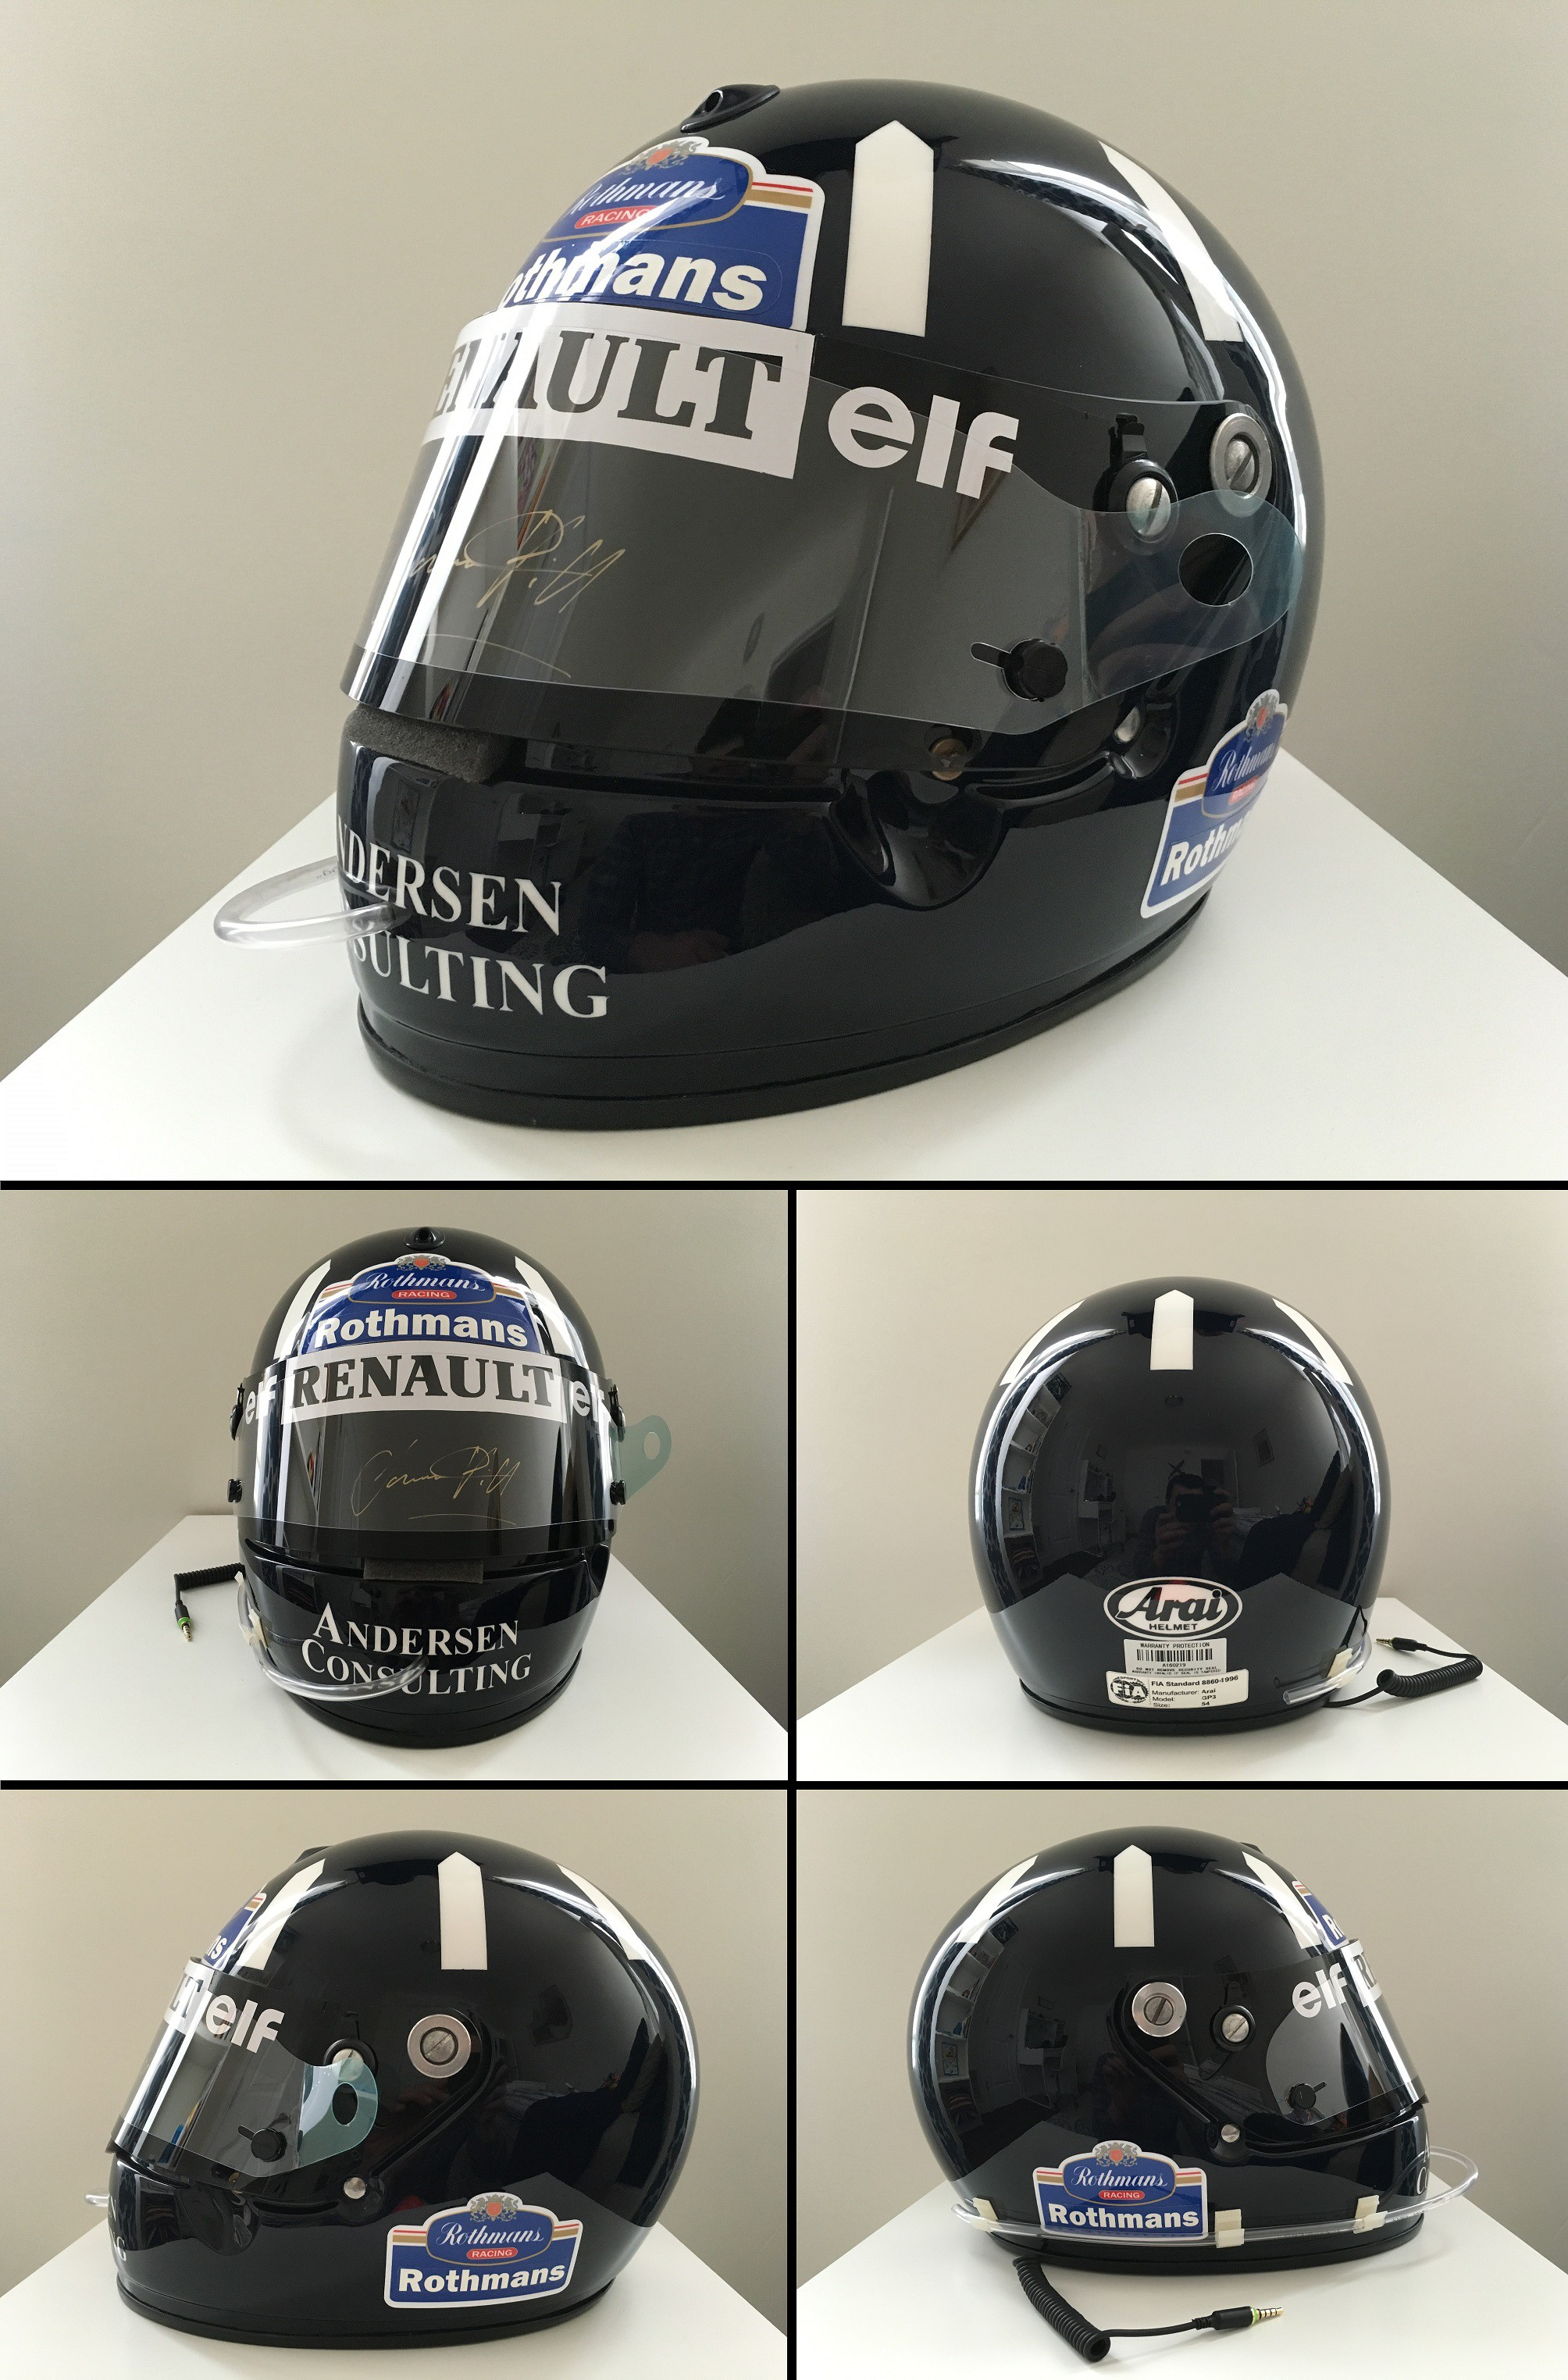 casques pilotes de f1 page 276 formule 1 forum sport auto. Black Bedroom Furniture Sets. Home Design Ideas